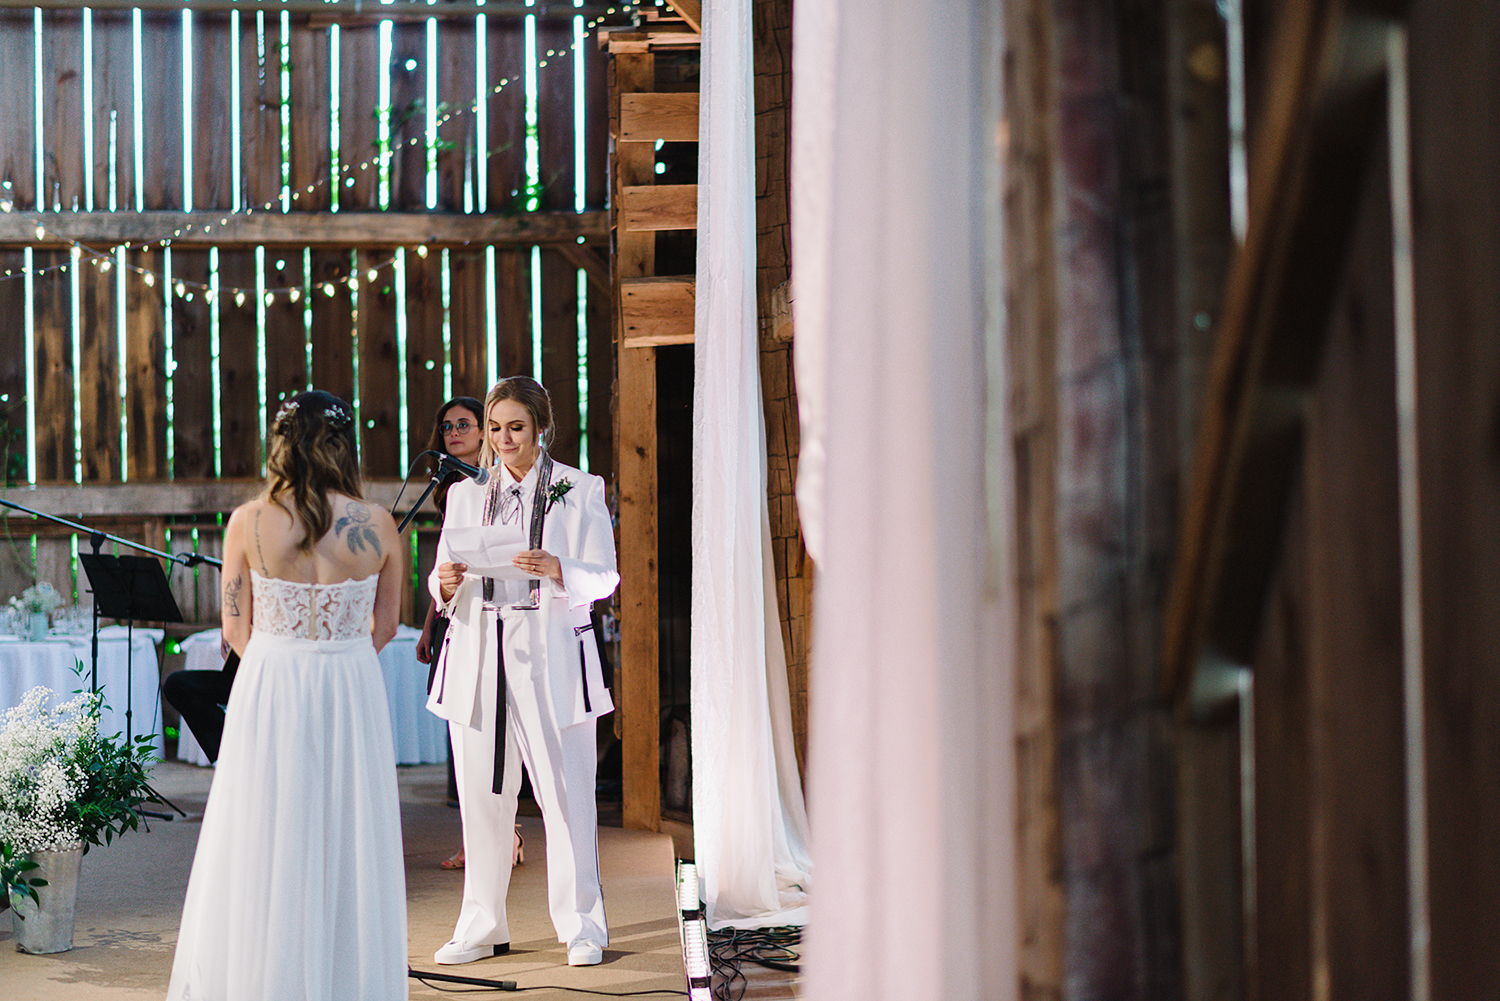 cambium-farms-wedding-ryanne-hollies-photography-gay-wedding-lgbtq-trendy-cool-badass-junebug-weddings-inspiration-ceremony-in-old-barn-bride-and-bride-vows-crying-reaction-support-gay-marriage-love-is-love.jpg